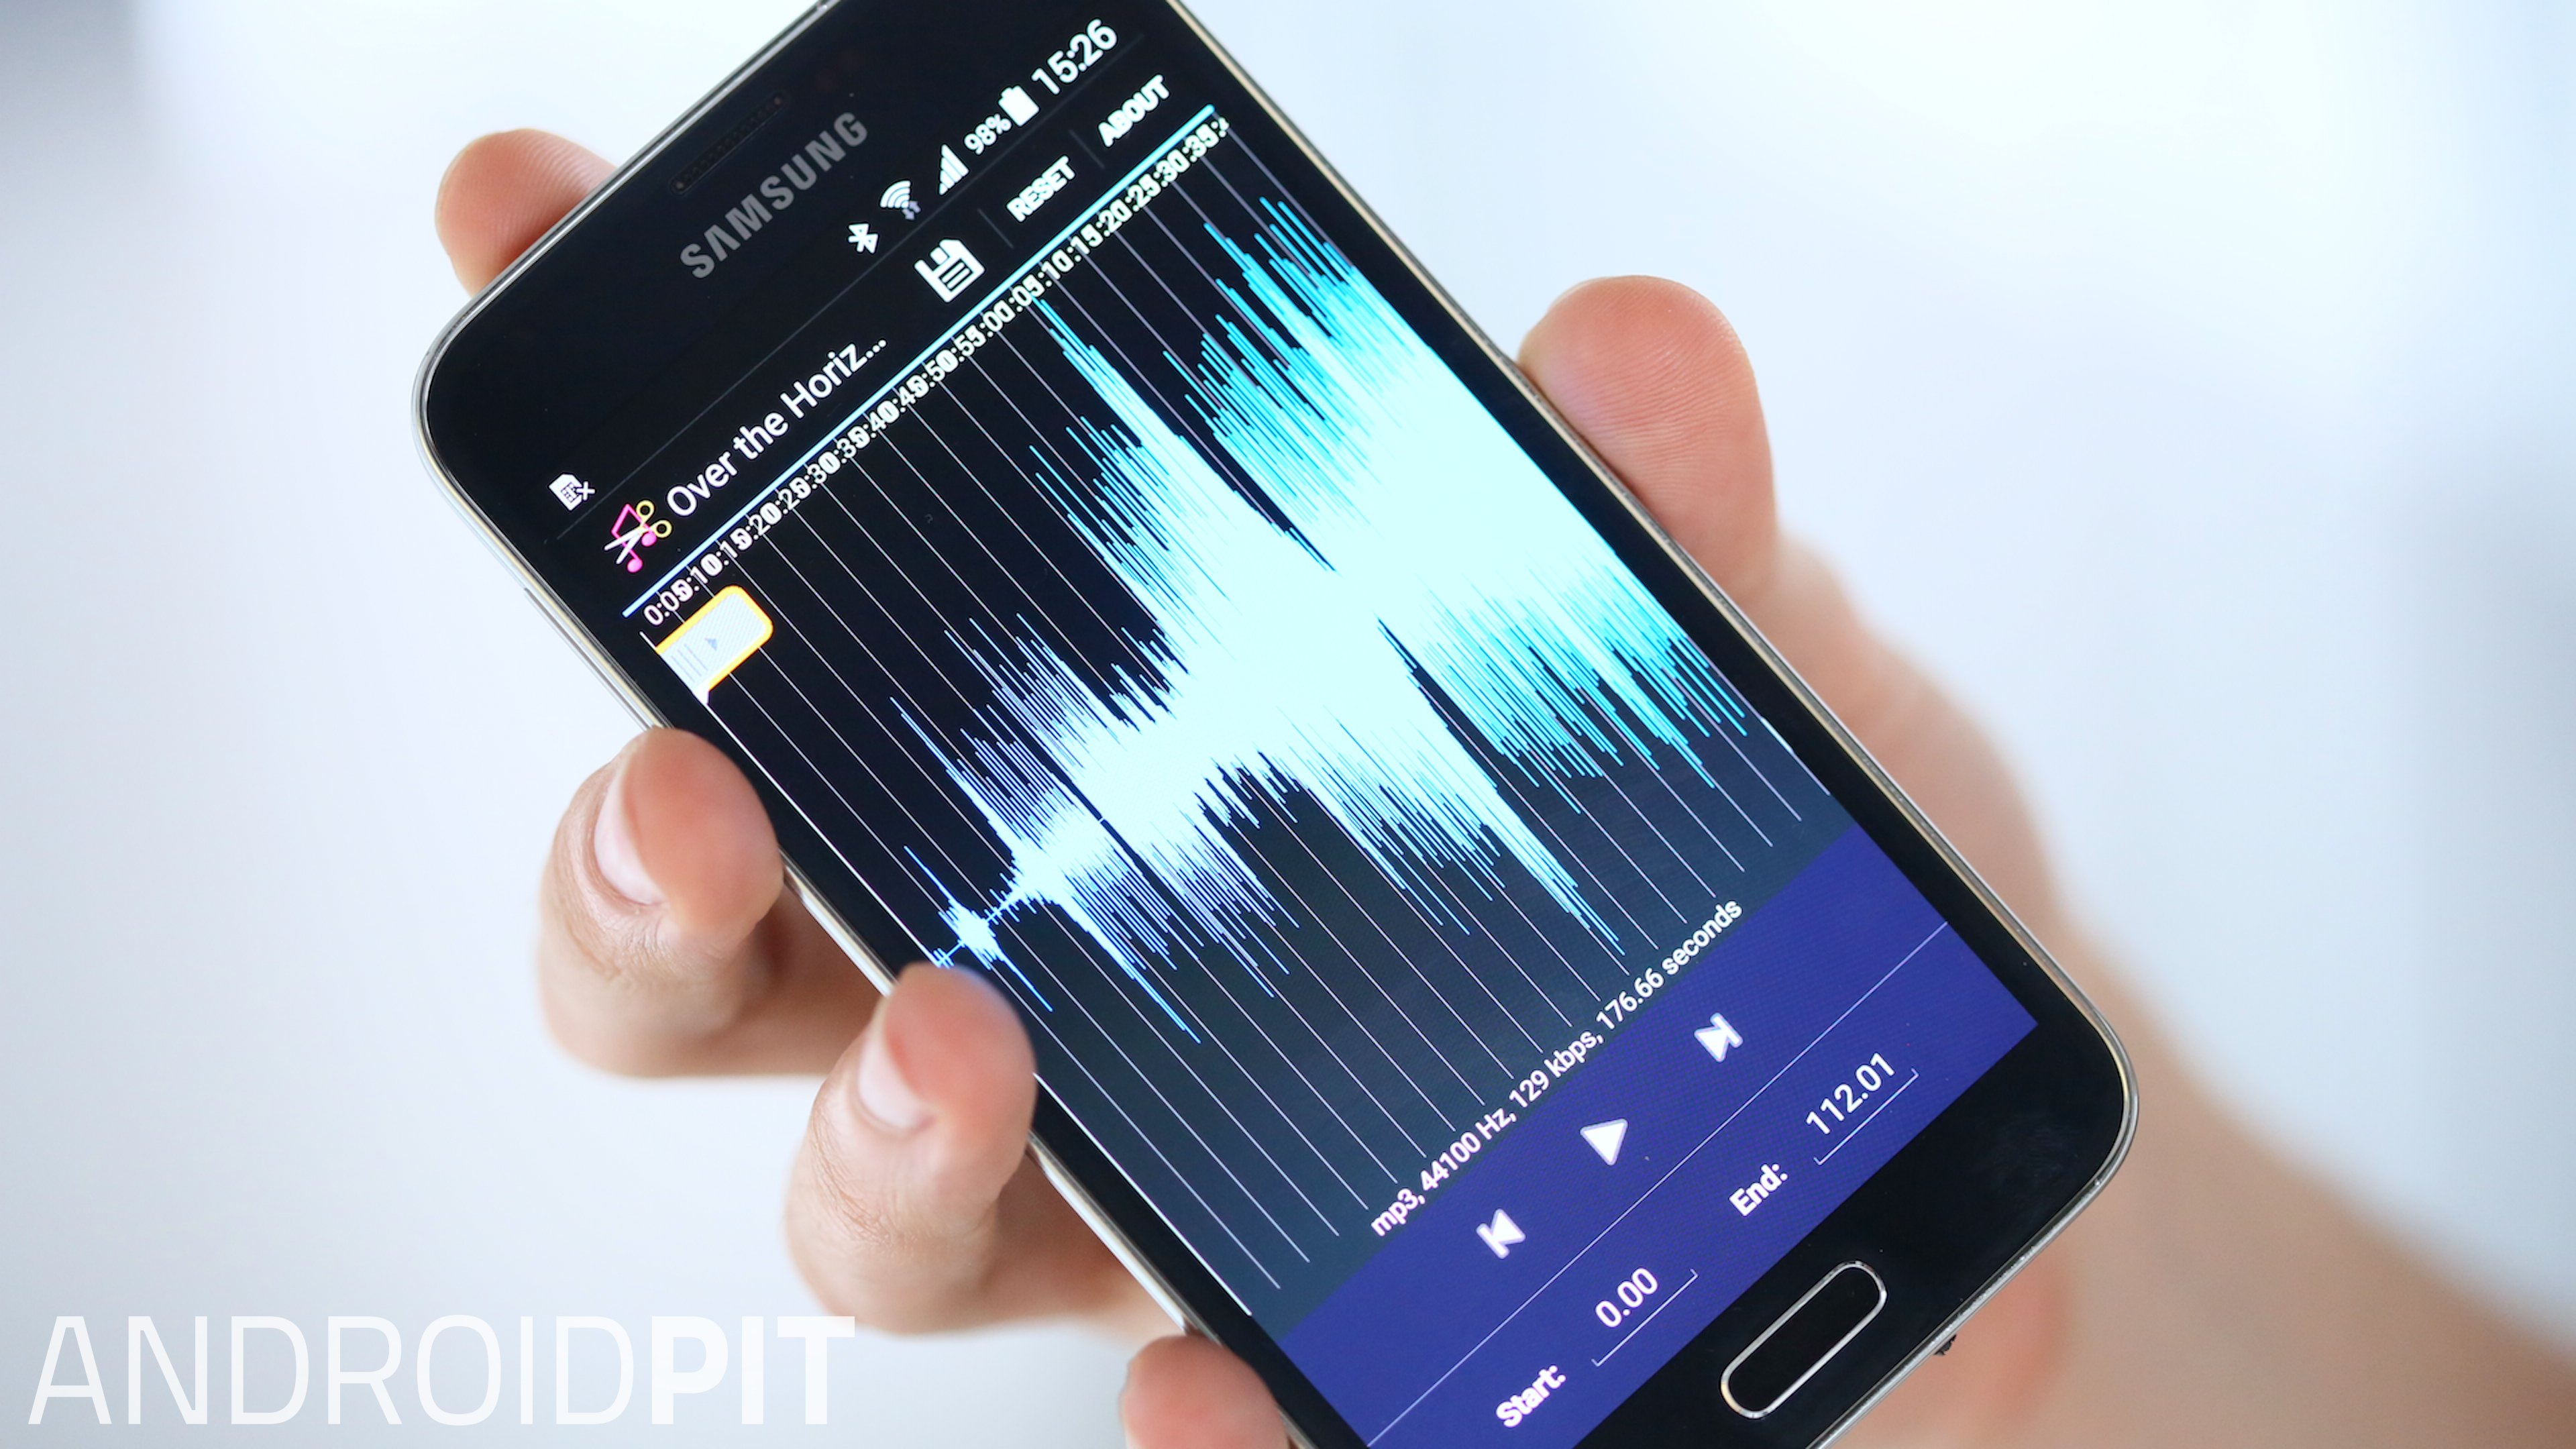 Electronic Free Ringtones Download For Android Phones how to turn any song into a ringtone on your android phone androidpit